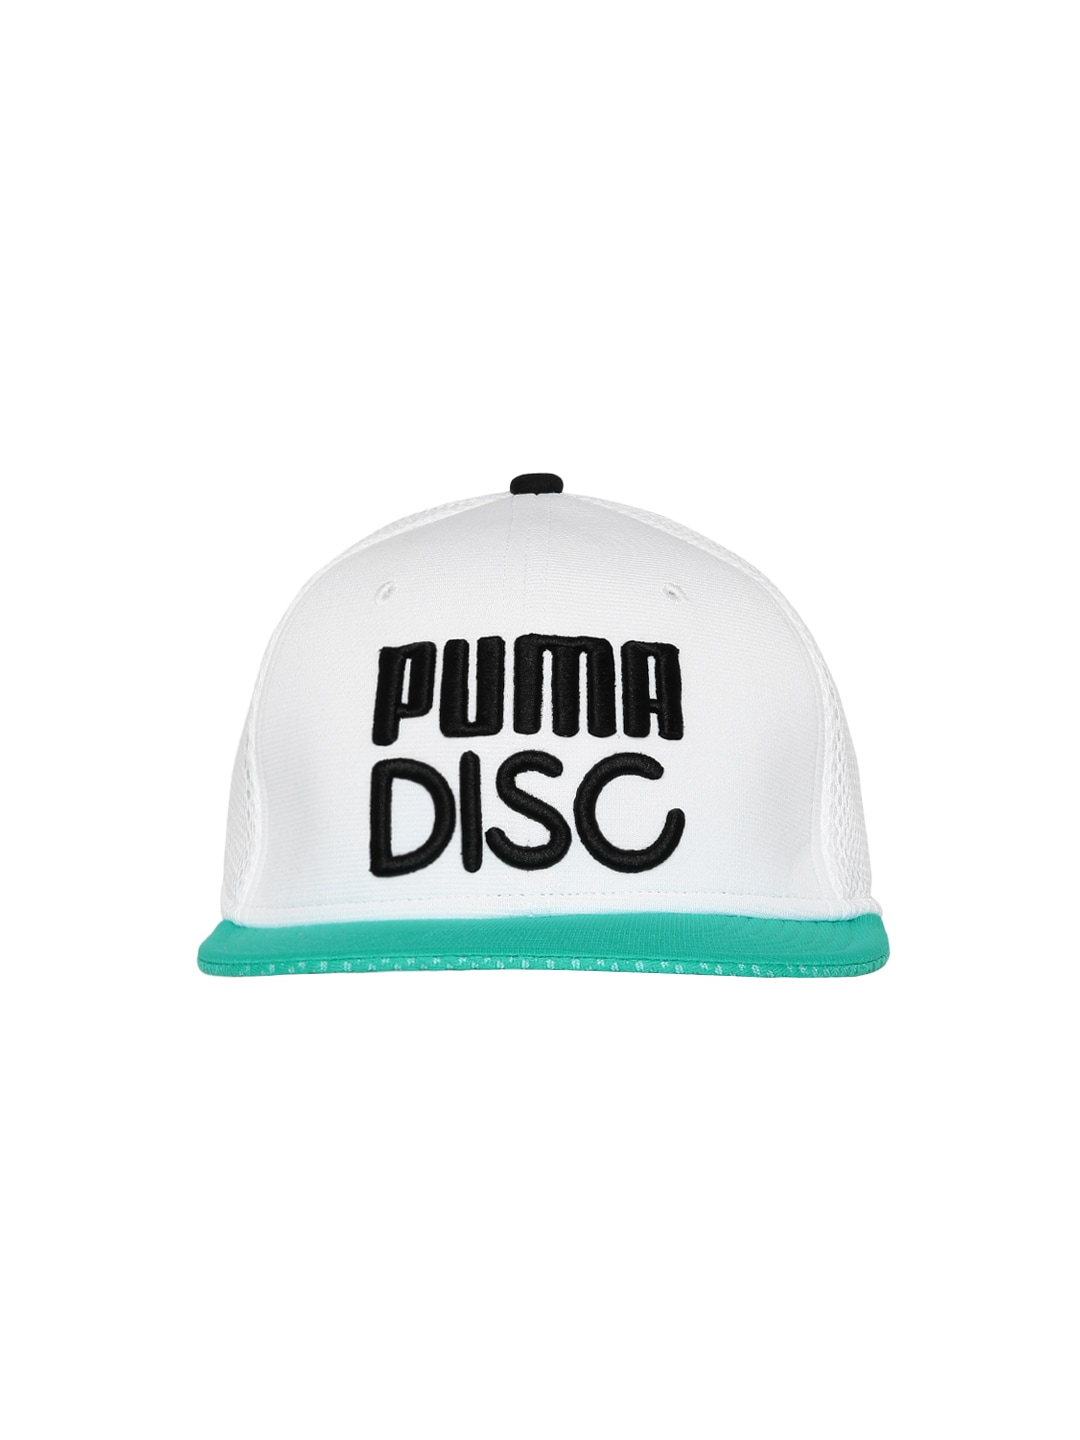 Puma 2102002 Unisex White And Green Disc Cap - Best Price in India ... fee5a828479